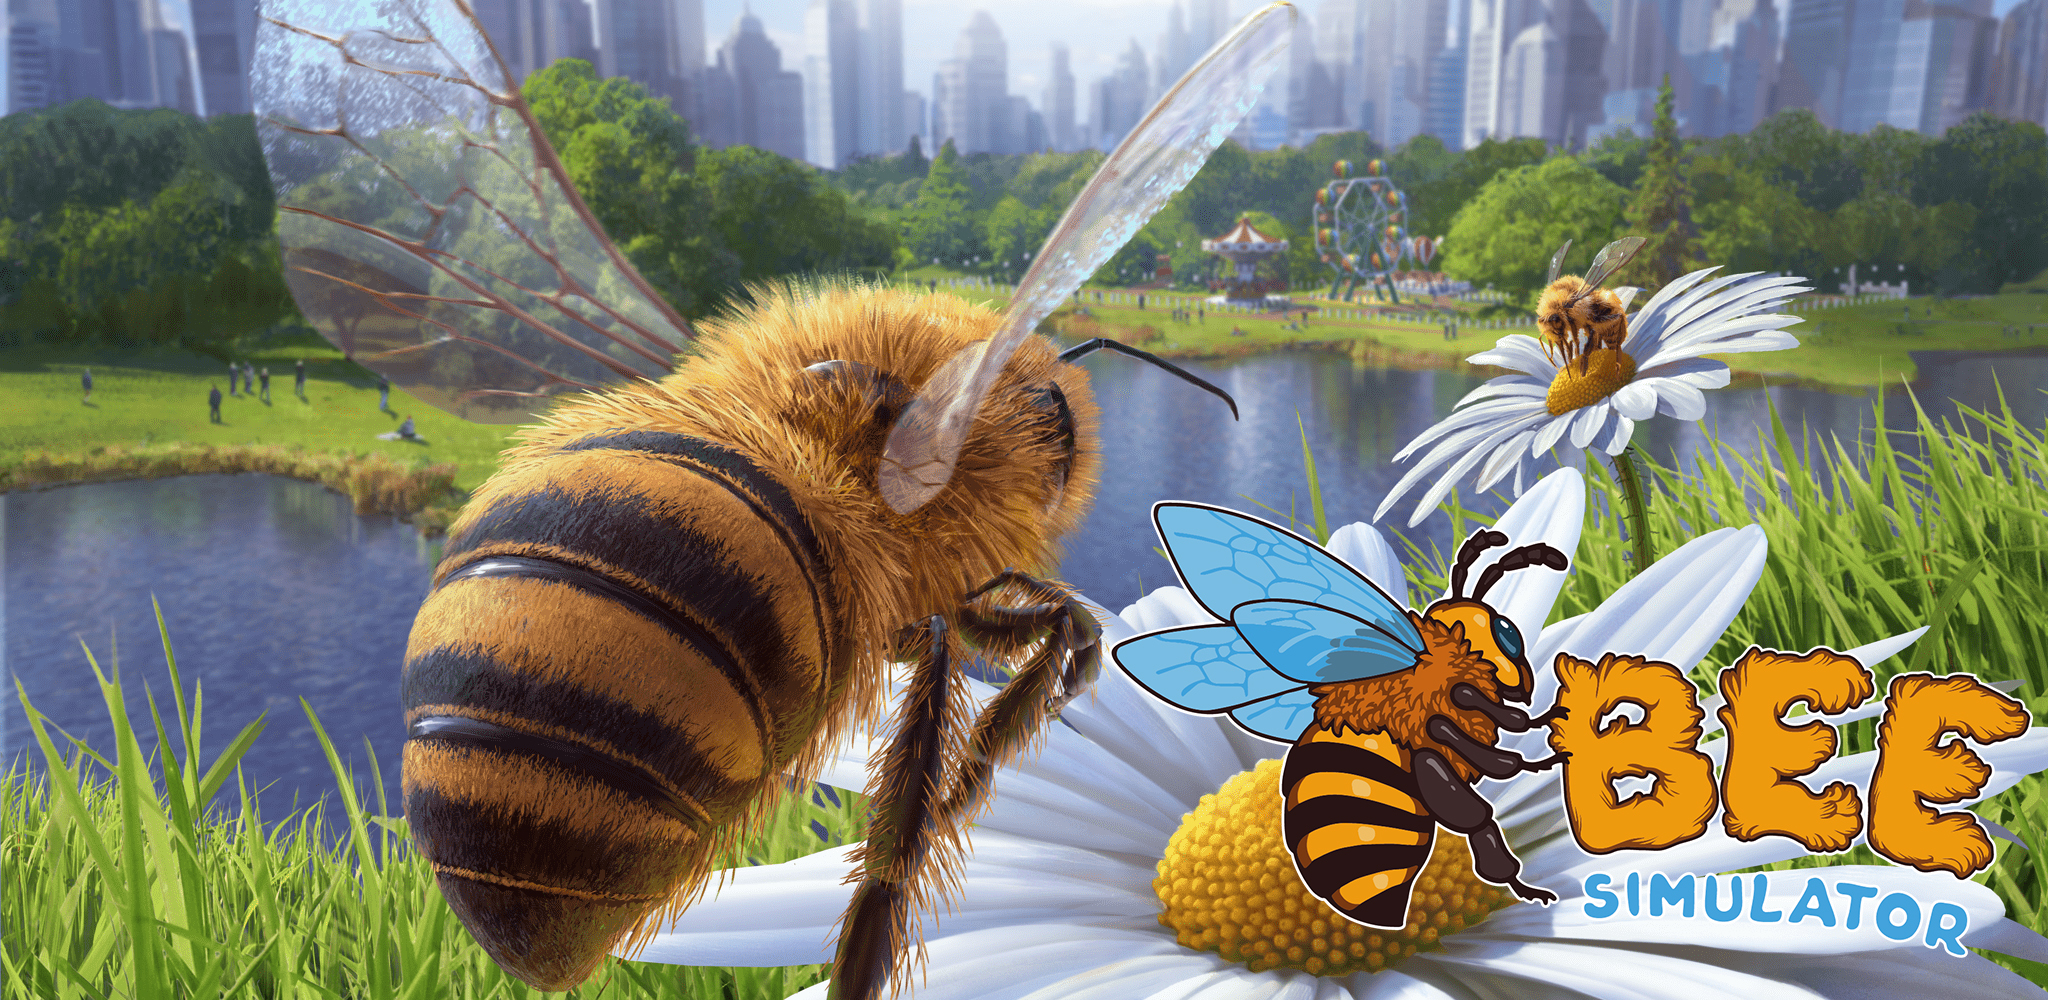 Bee Simulator Free Download